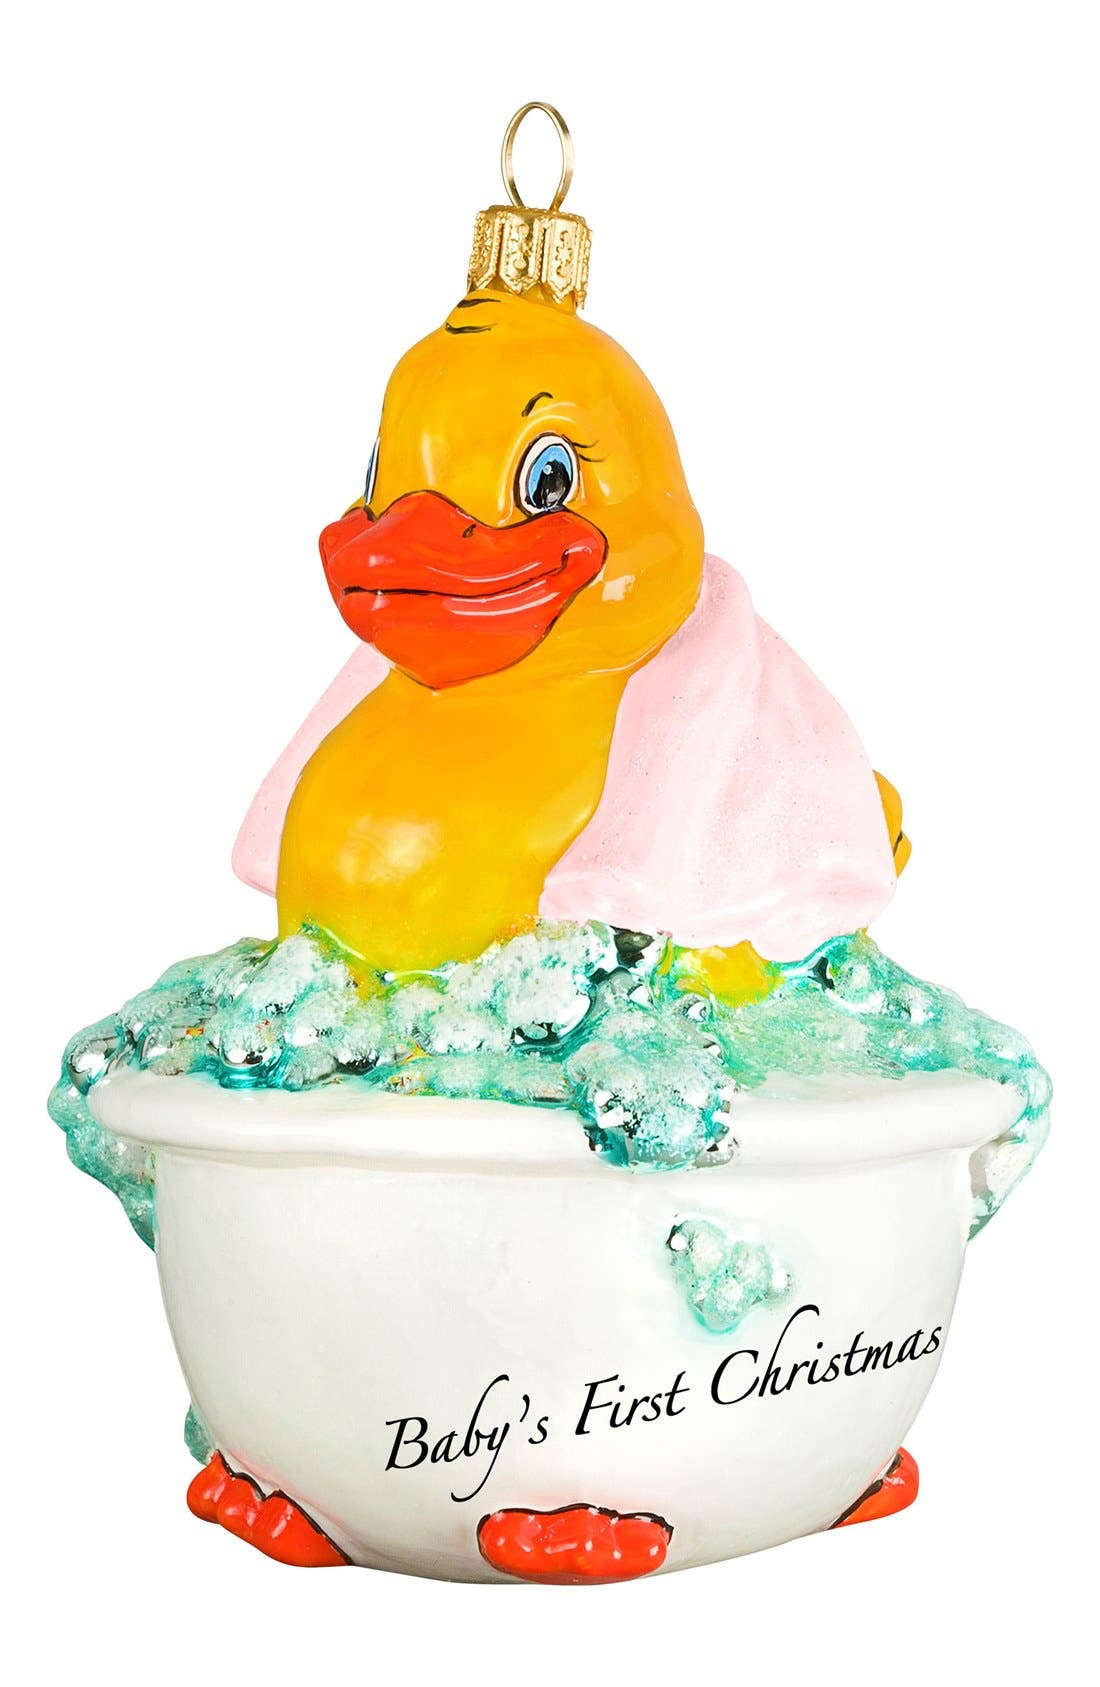 'Baby's First - Rubber Ducky' Ornament,                             Main thumbnail 1, color,                             PINK